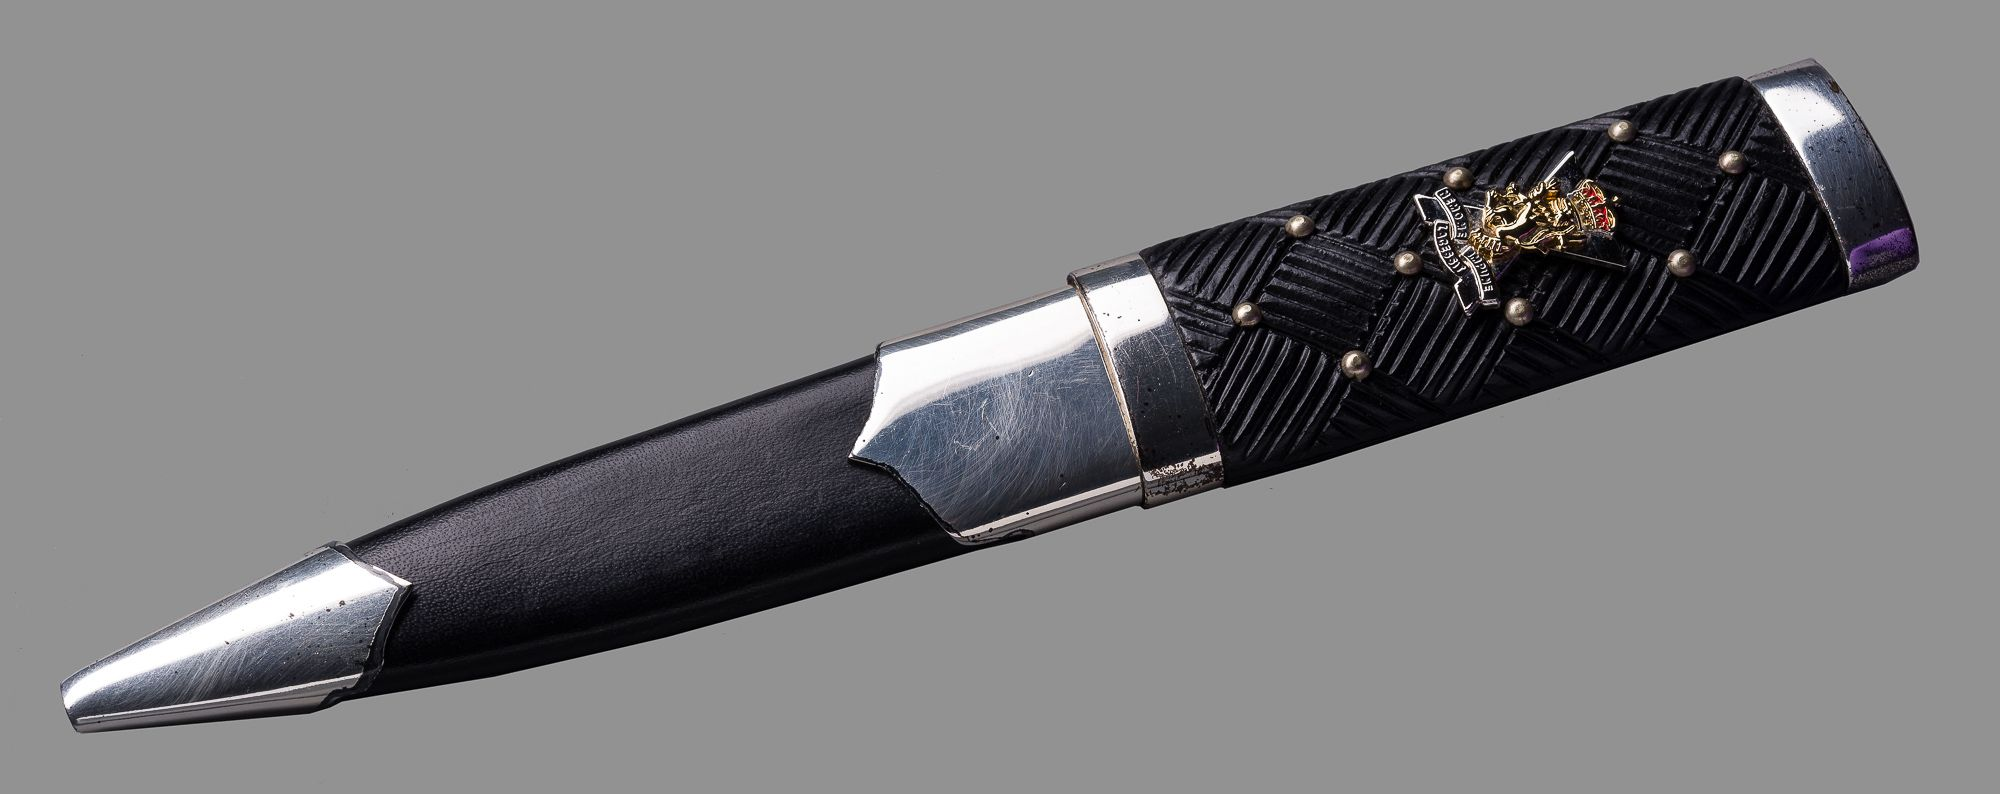 Royal Regiment of Scotland (SCOTS) Sgian Dubh produced by